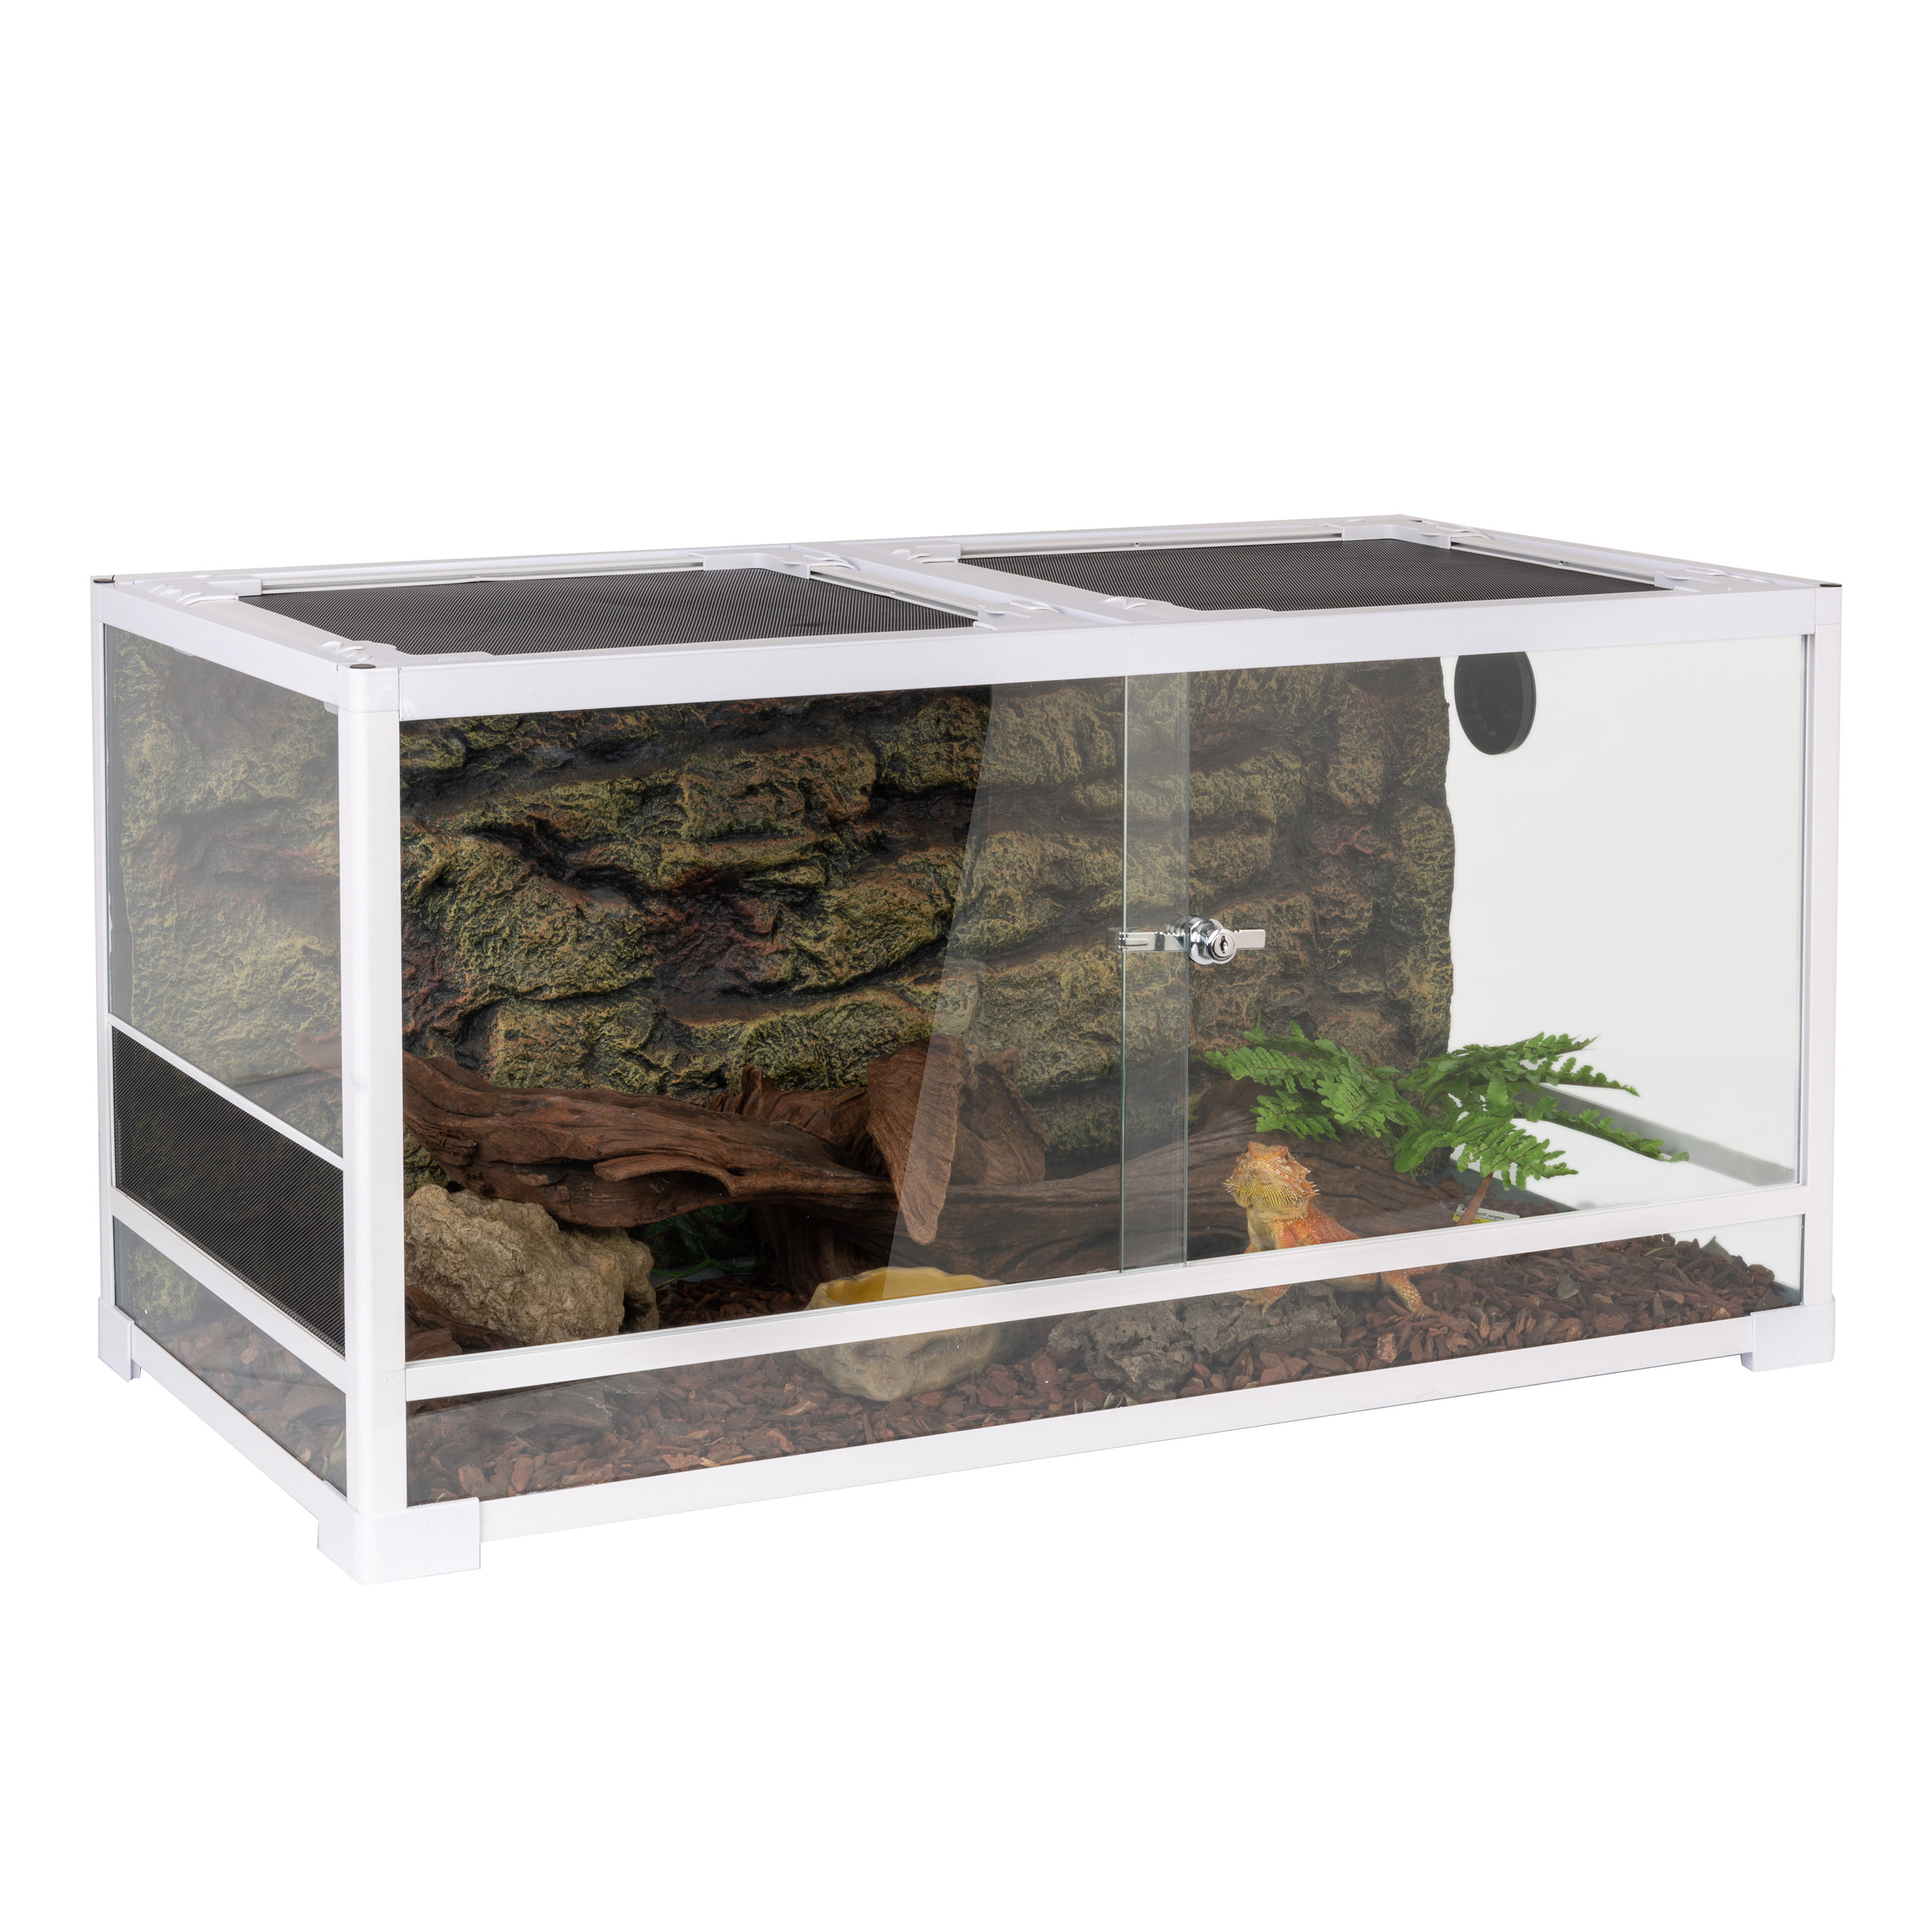 Oiibo Reptile Glass Terrarium Sliding Doors With Screen Ventilation White Reptile Terrarium 36 X 18 X 18 50 Gallon Walmart Com Walmart Com